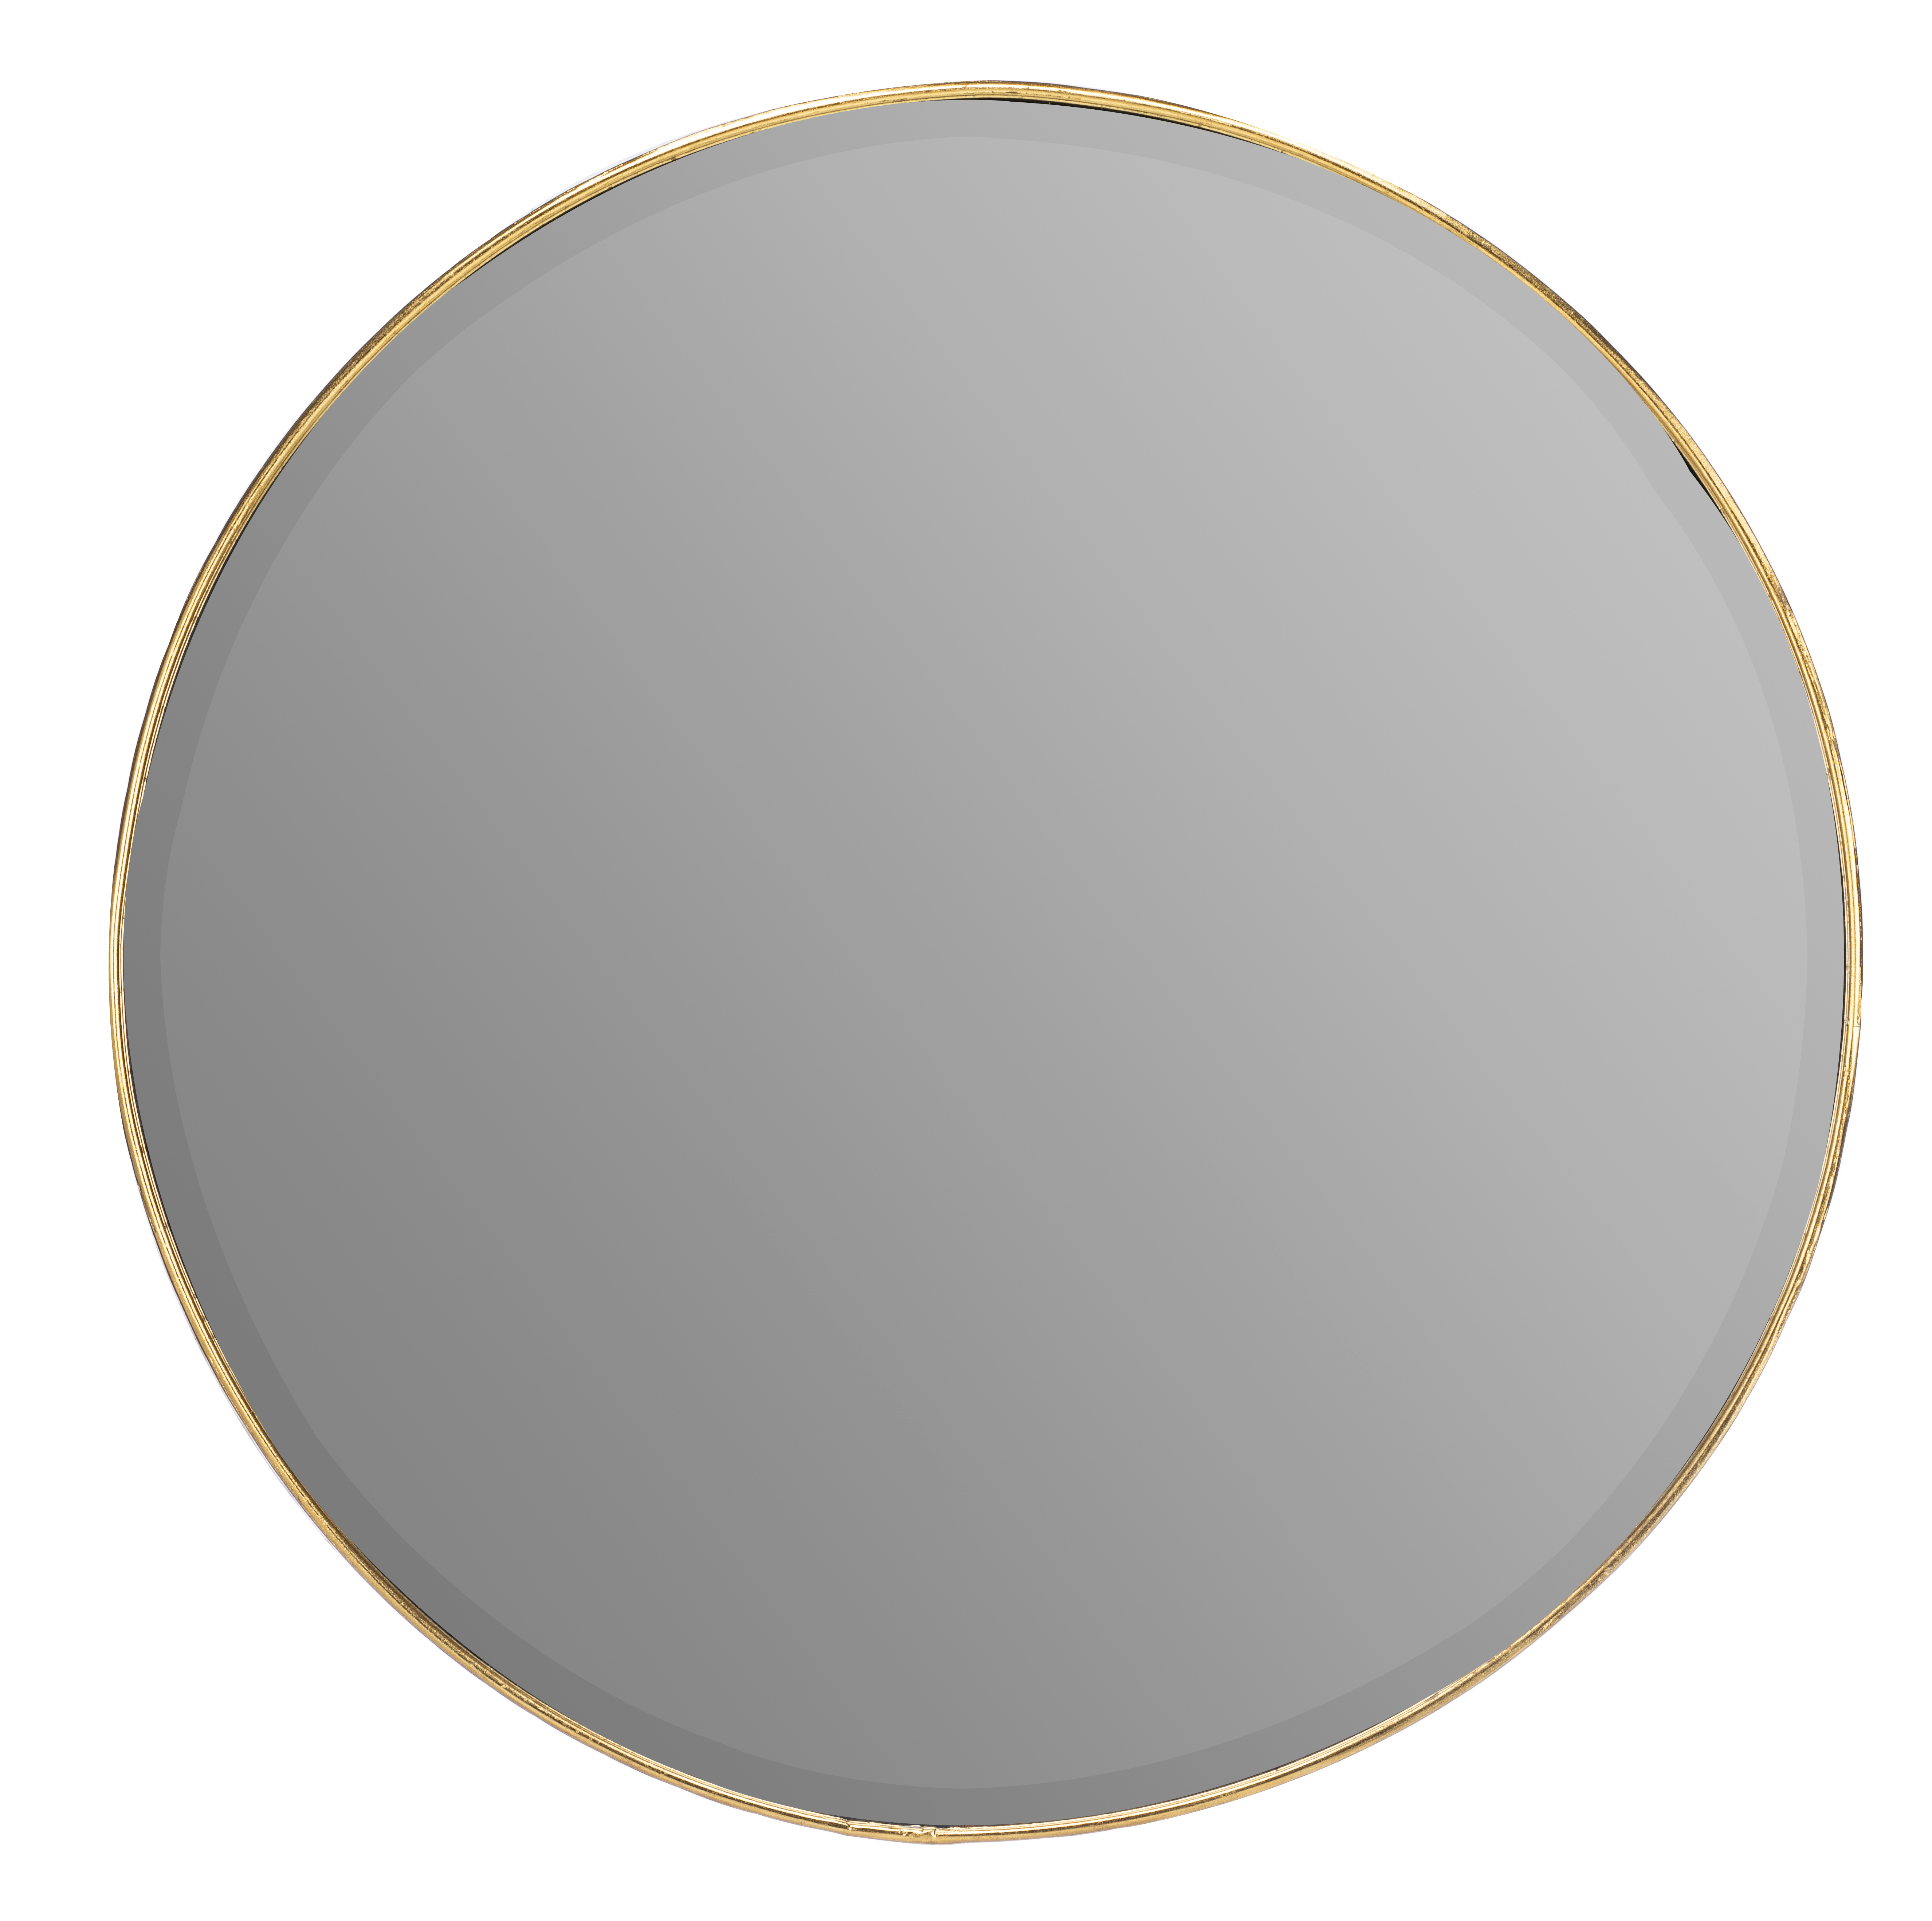 Classic Wall Mirrors Throughout 2019 Sabine Wall Mirror (View 20 of 20)